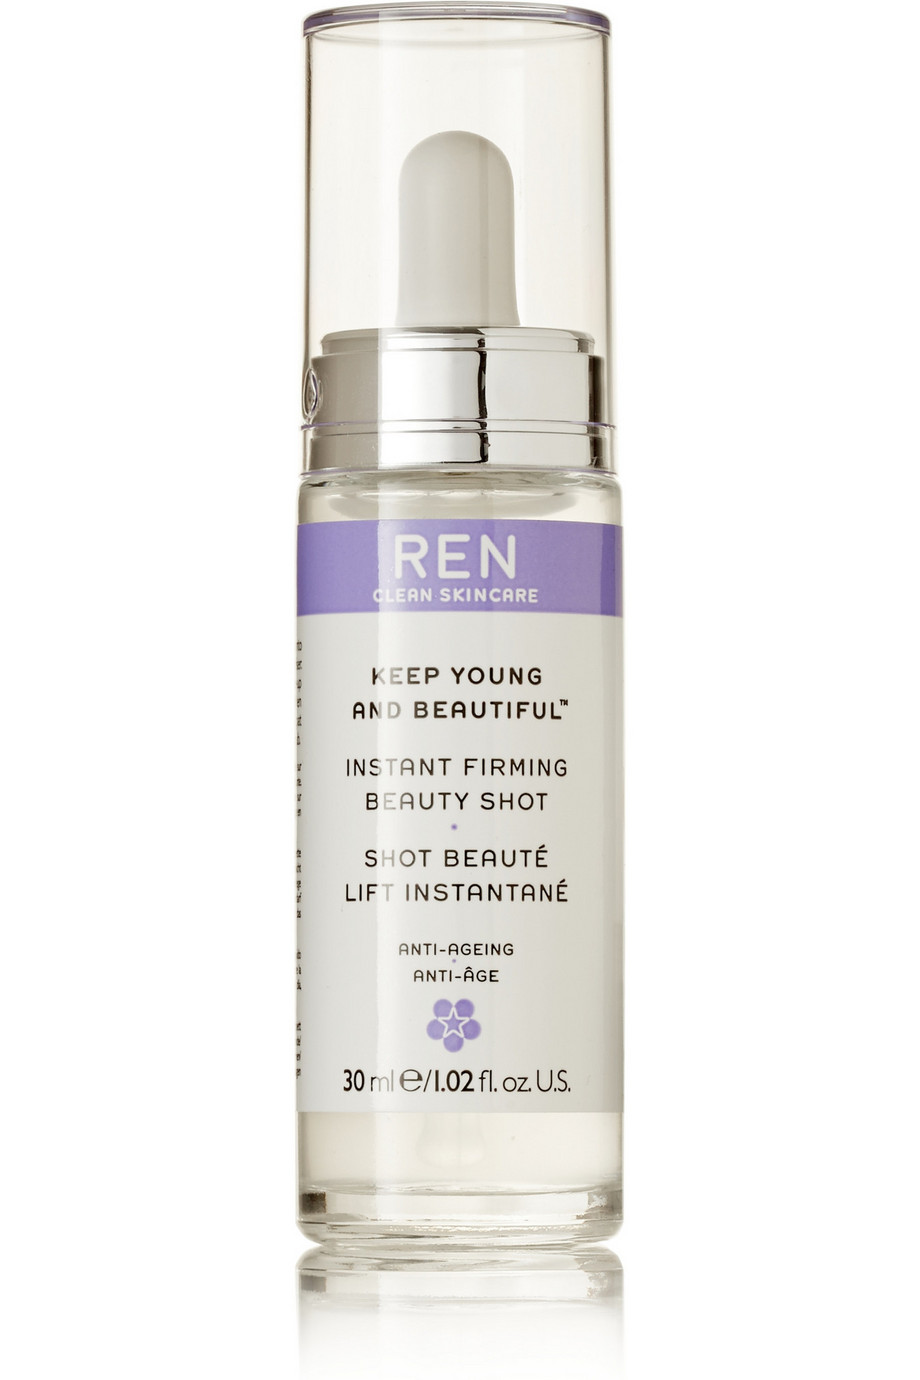 Instant Firming Beauty Shot, 30ml, by Ren Skincare